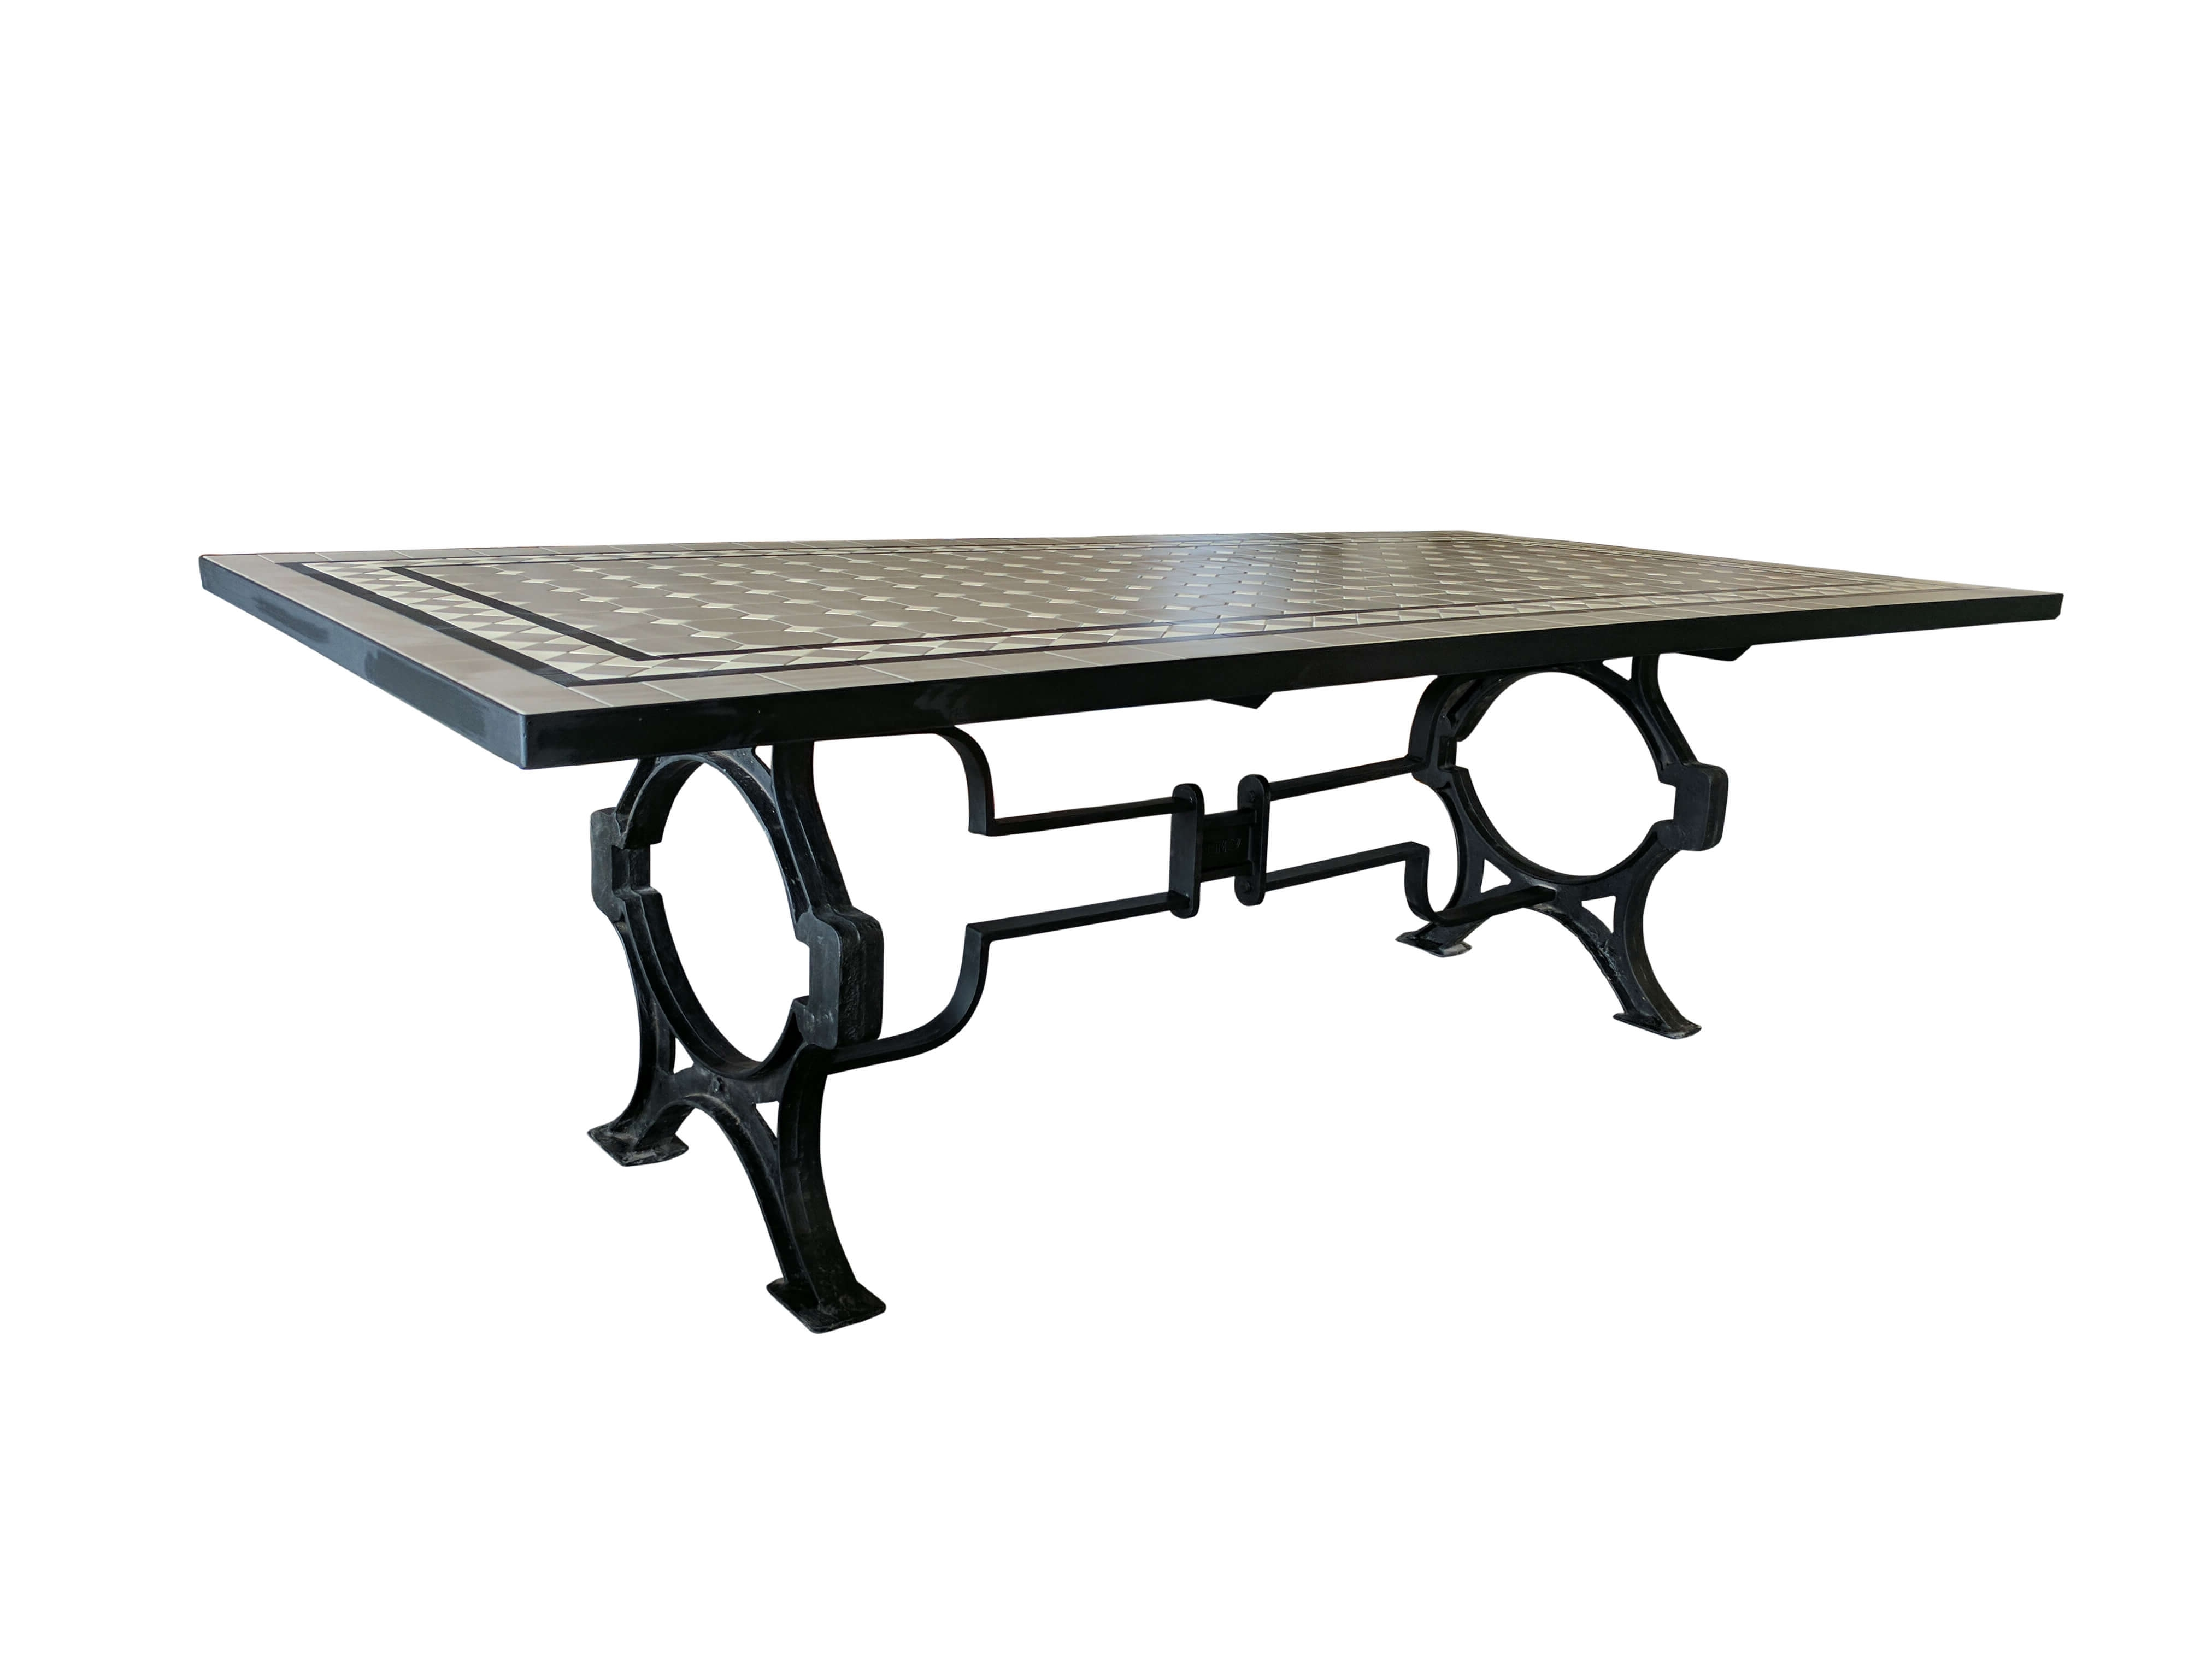 Mosaic Dining Tables For Sale With Regard To Newest Tile Dining Table (View 13 of 25)